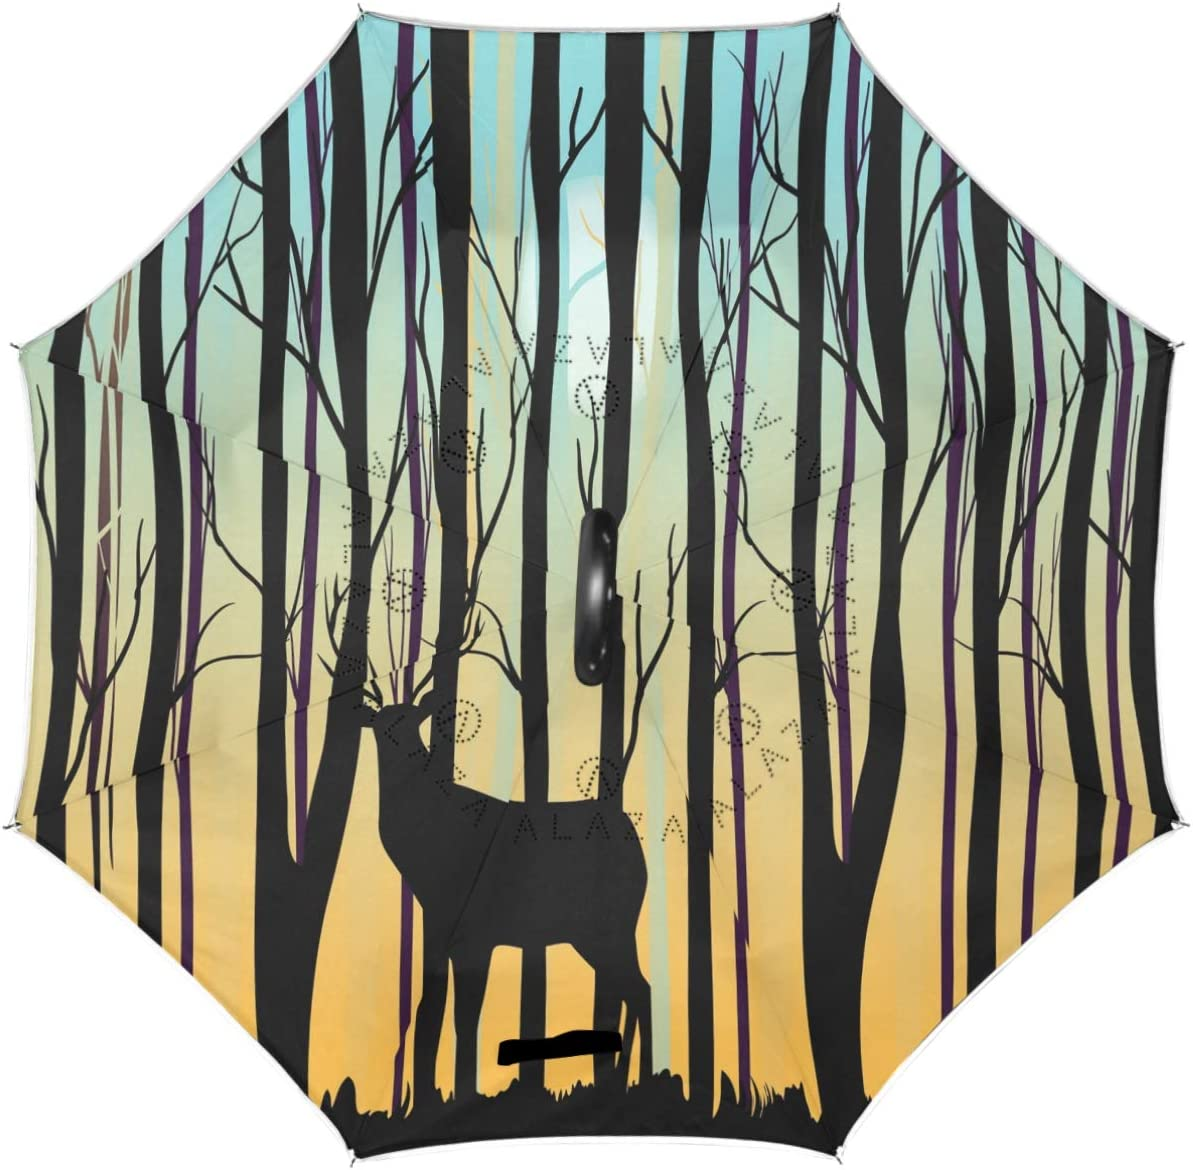 Wamika Deer Oakland Mall Forest Trees Max 75% OFF Reverse Double Inverted Layer Umbrella